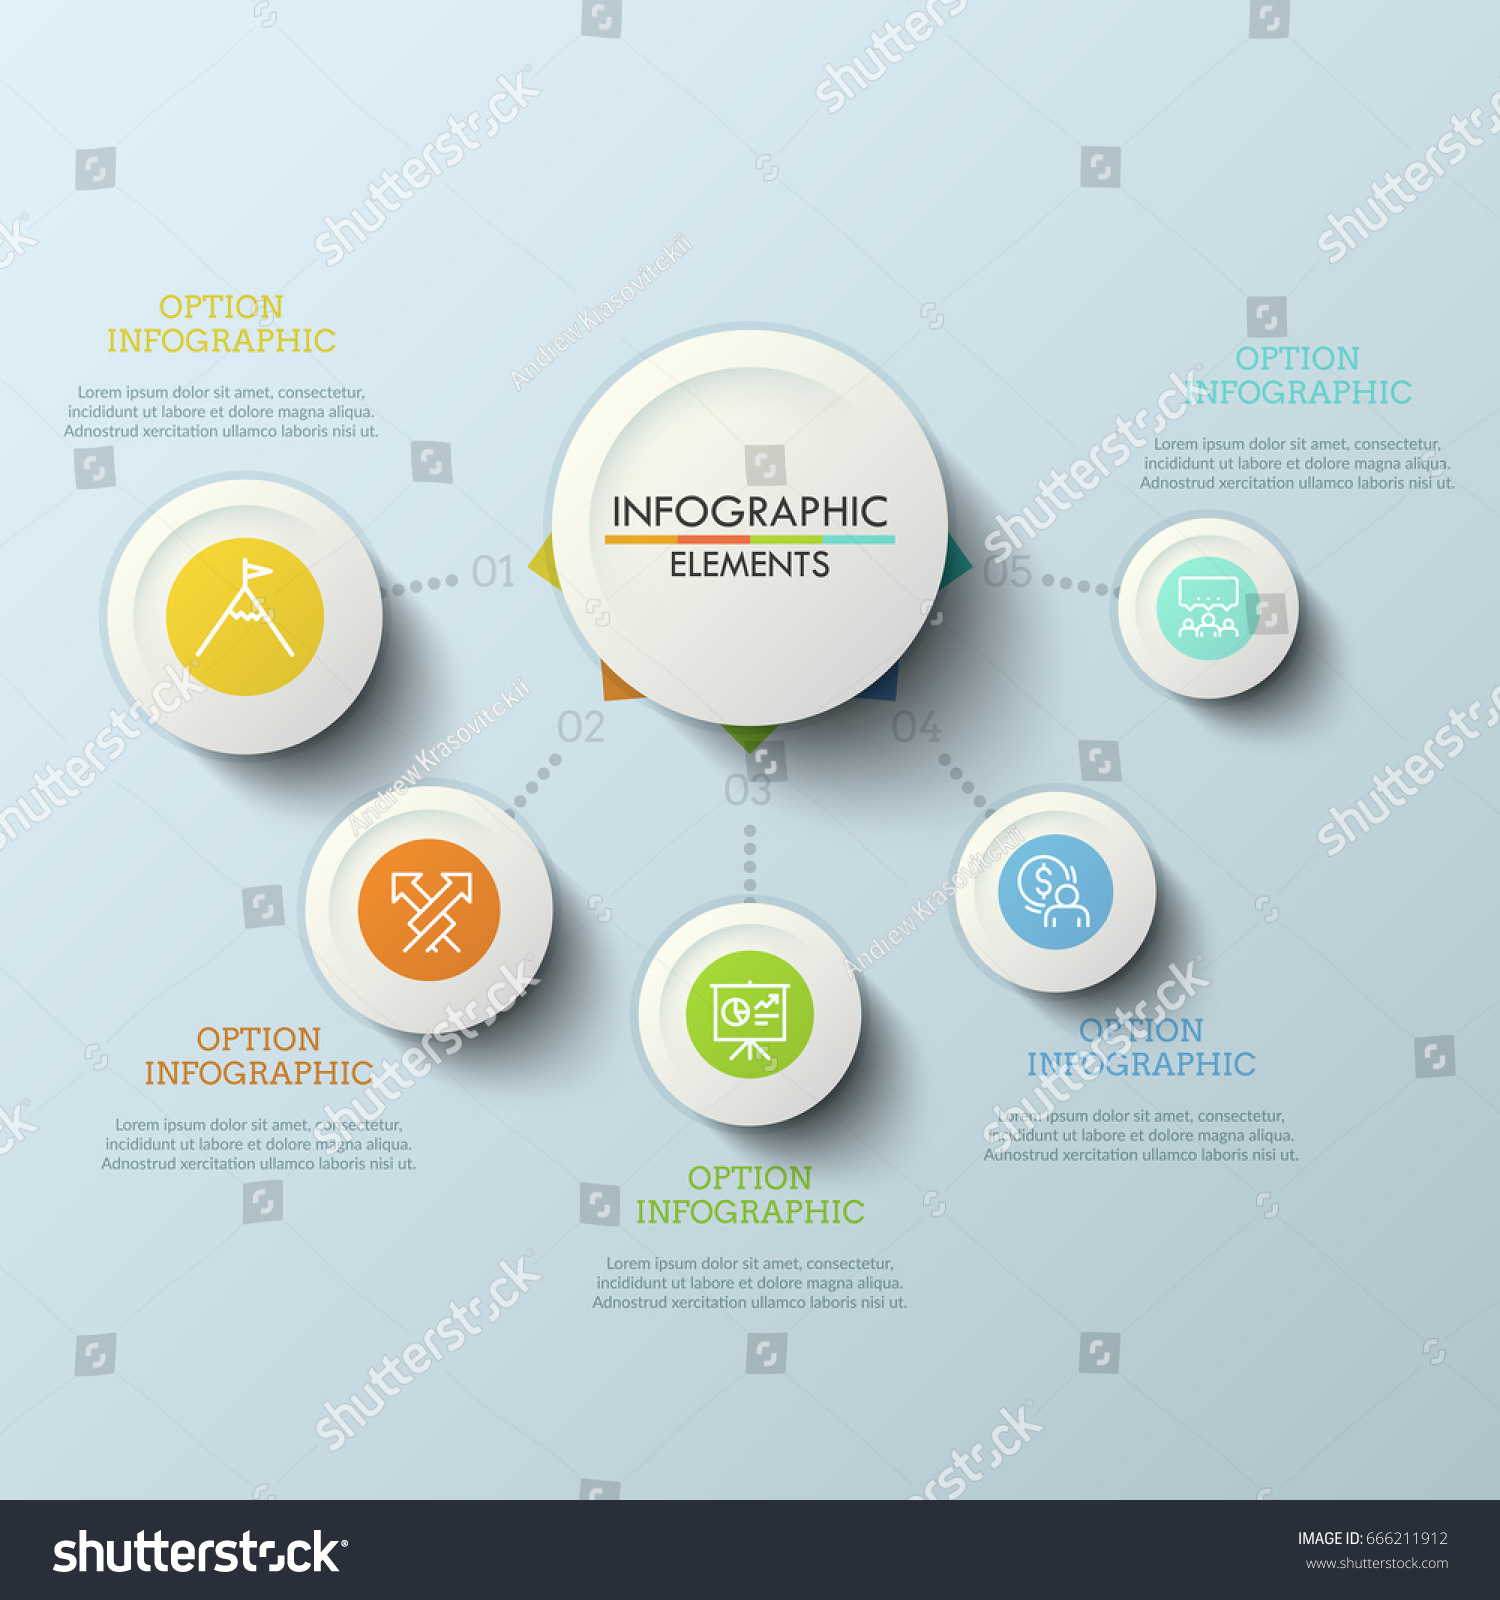 Flow chart central round element connected stock vector 666211912 flow chart central round element connected with 5 numbered options by dotted lines five geenschuldenfo Gallery